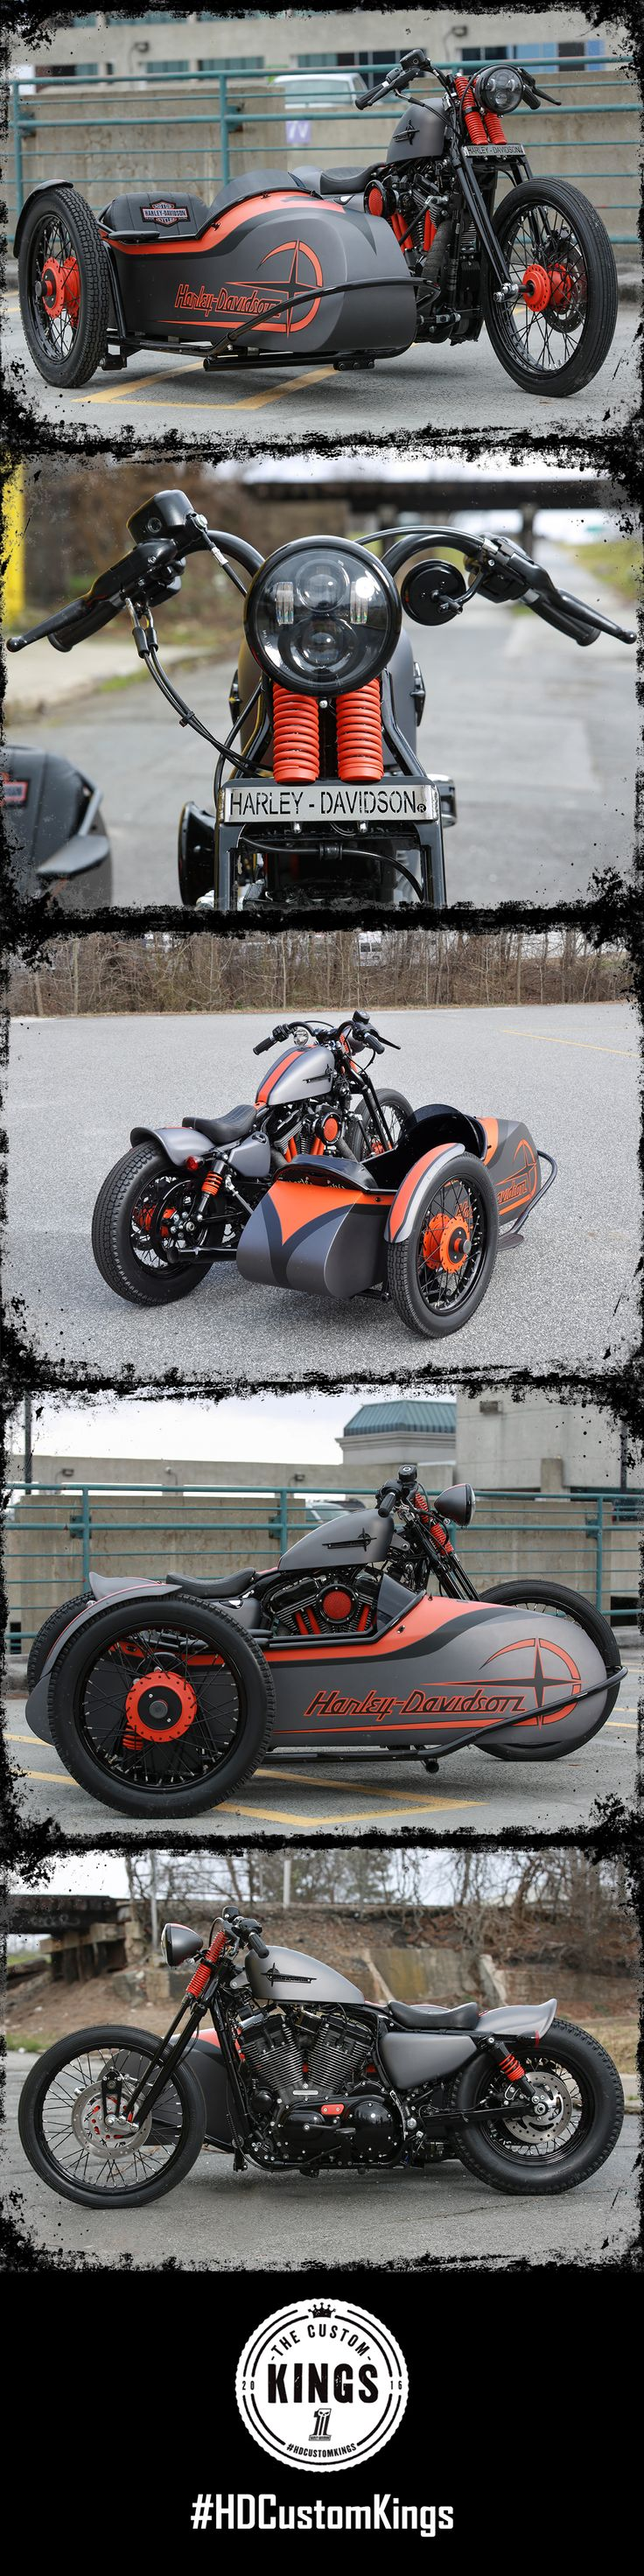 Greensboro Harley-Davidson took a 2016 Seventy-Two and added a sidecar to their aggressive looking masterpiece. | Harley-Davidson #HDCustomKings